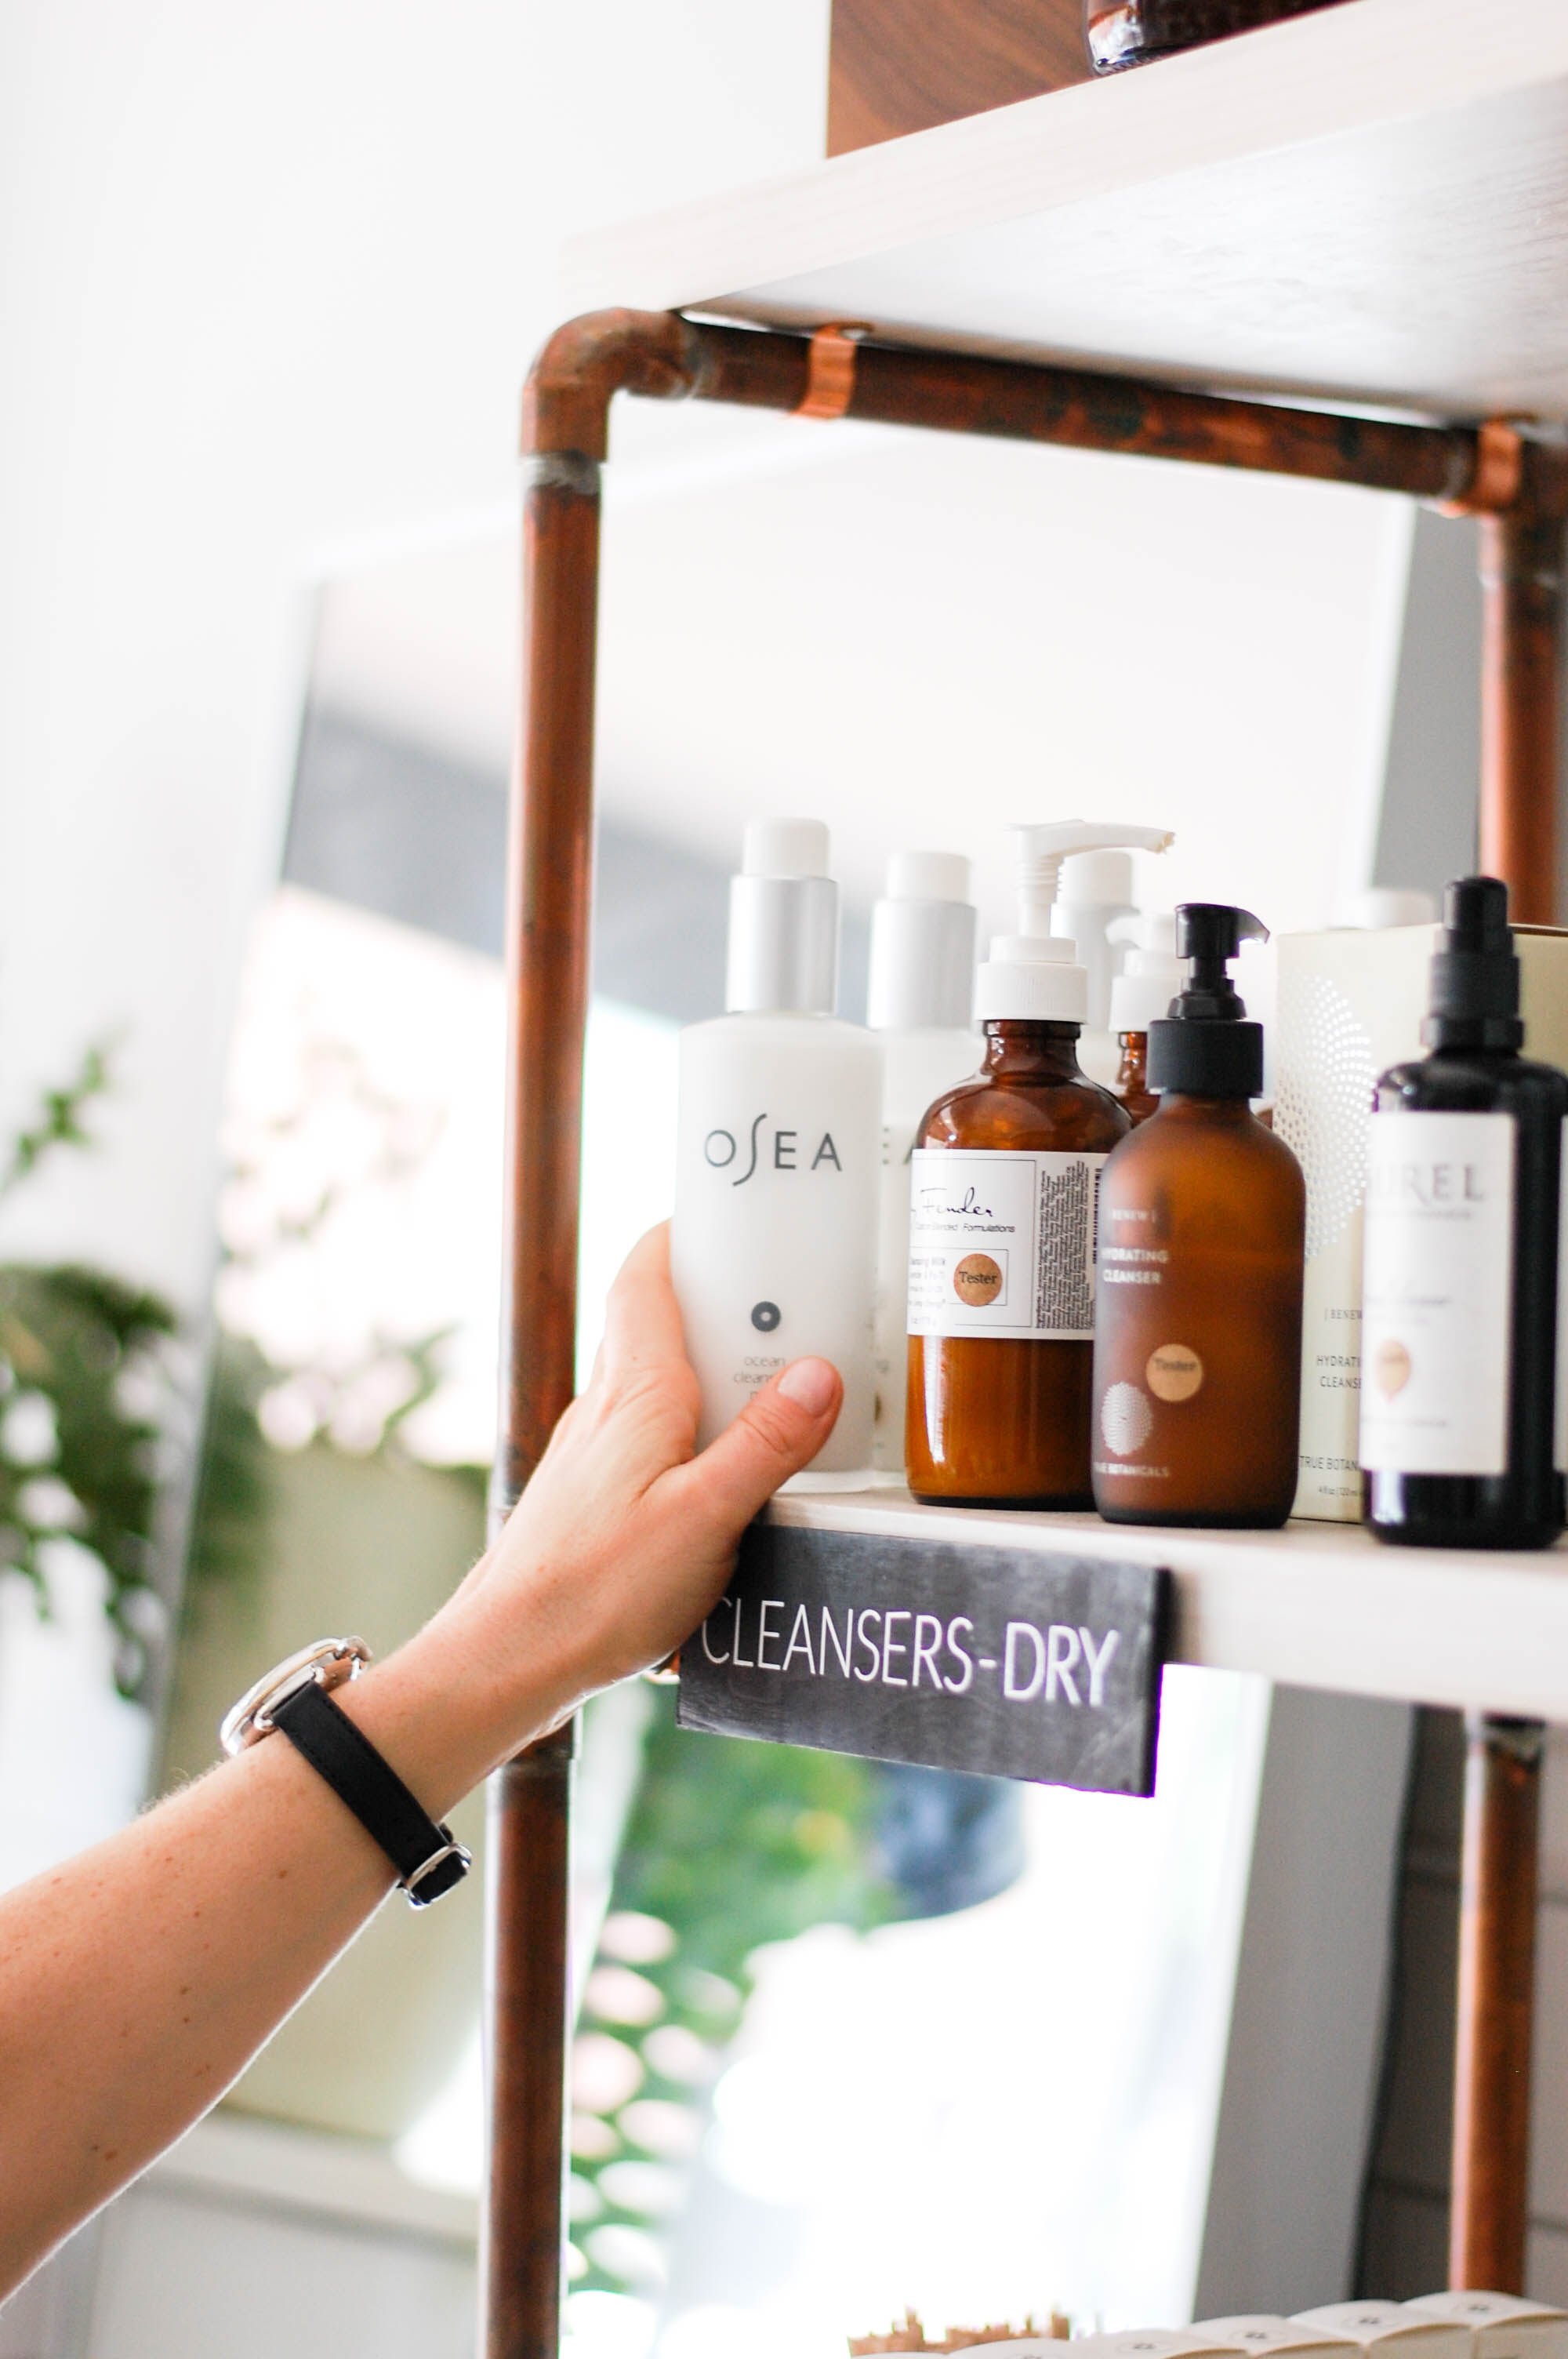 Kerri Axelrod grabbing OSEA Ocean Cleansing Milk, a key part in her skincare routine